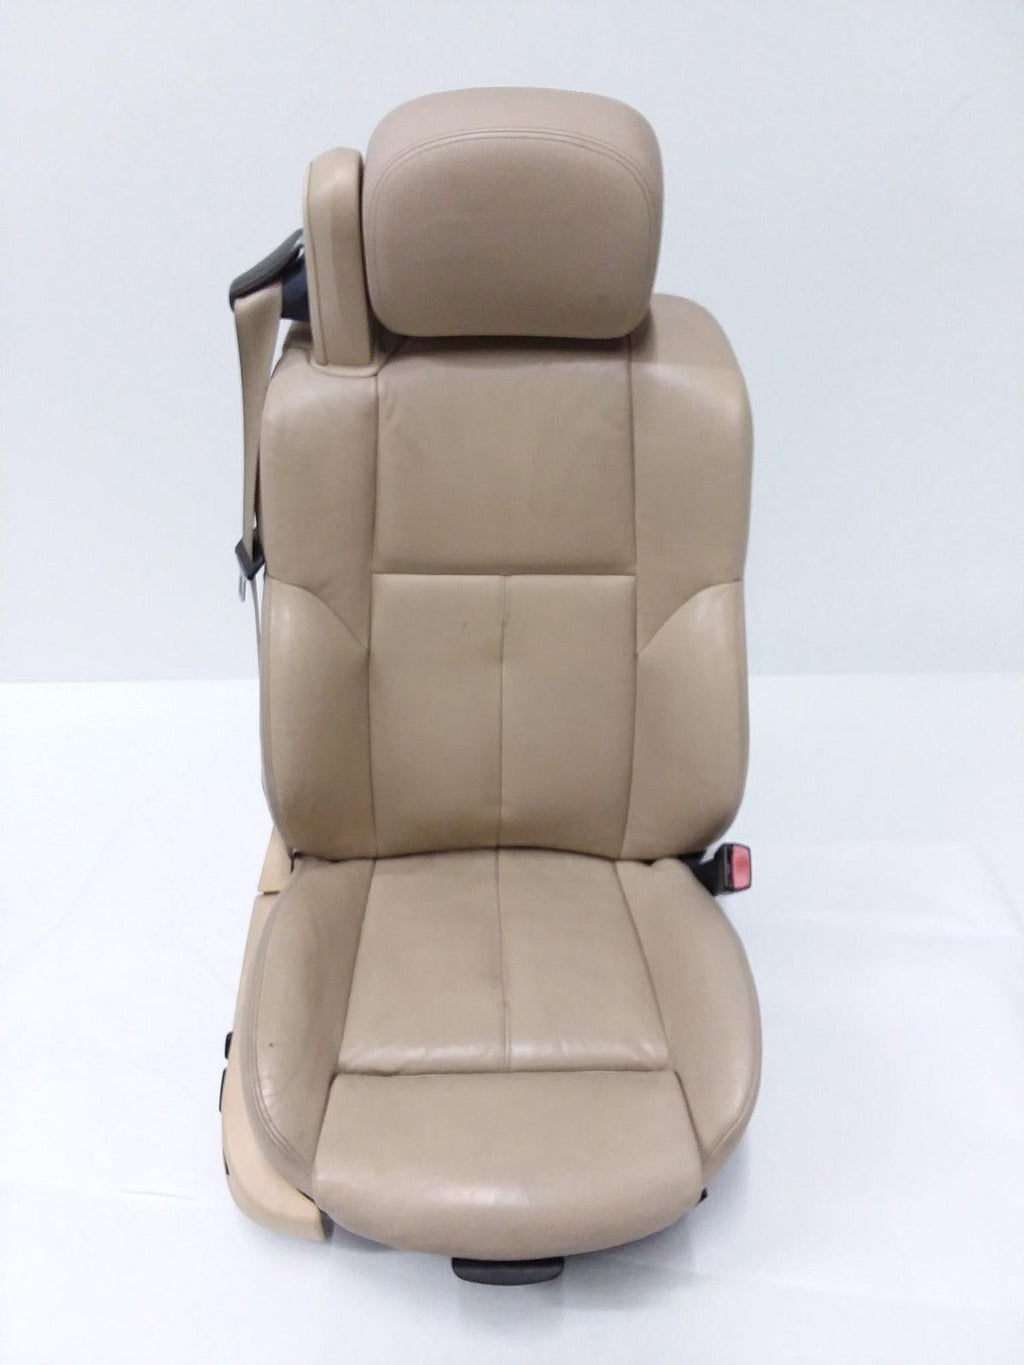 BMW E64 645 650 M6 CONVERTIBLE FRONT RIGHT SEAT 2004 2006 2010 CREAM BEIGE OEM